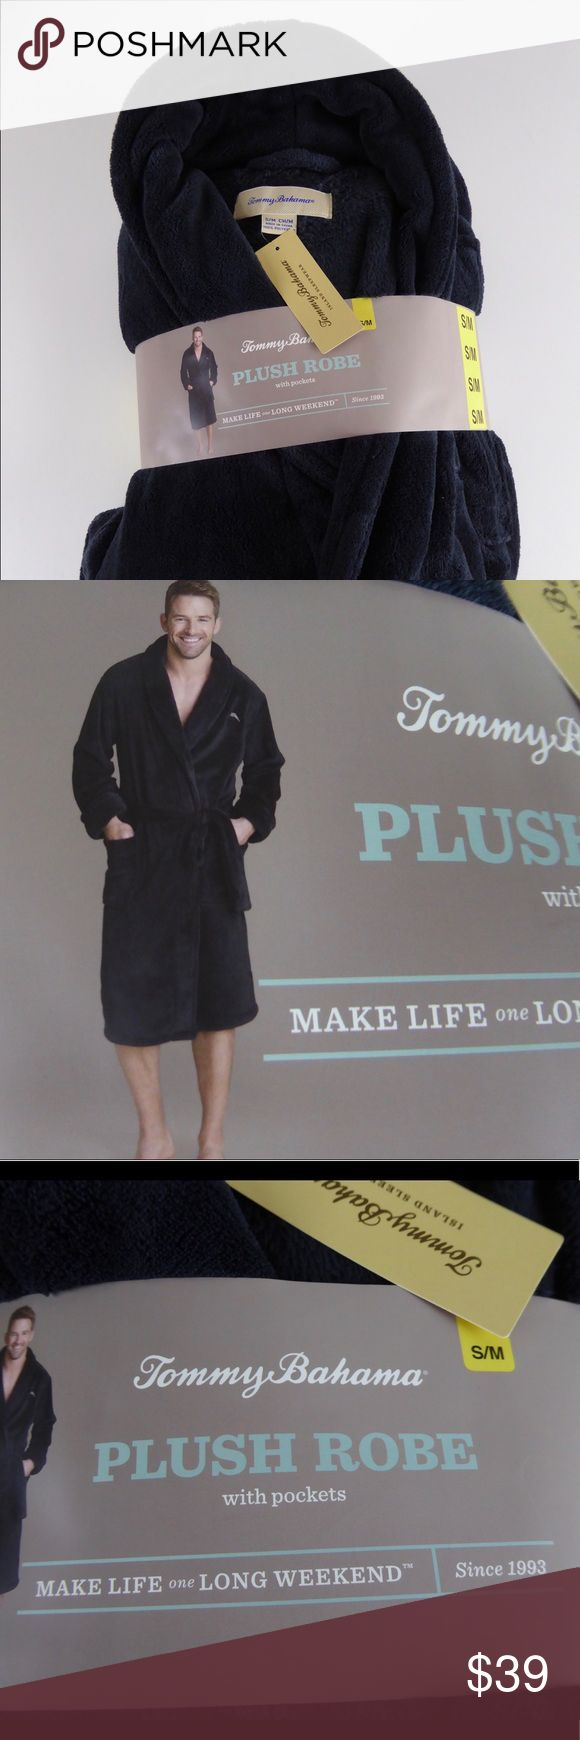 NWT Tommy Bahama Plush Bath Robe w/ Pockets & Logo Brand new super soft bathrobe from Tommy Bahama. Has front pockets and a traditional wrap style with belt in matching material. Tommy Bahama logo embroidered in a tonal color on left chest. Quite soft and is perfect for men or woman!  S/M sizing. Dark color...almost between a dark navy and black. Material content in photo. Let us know if you have any questions. Tommy Bahama Other